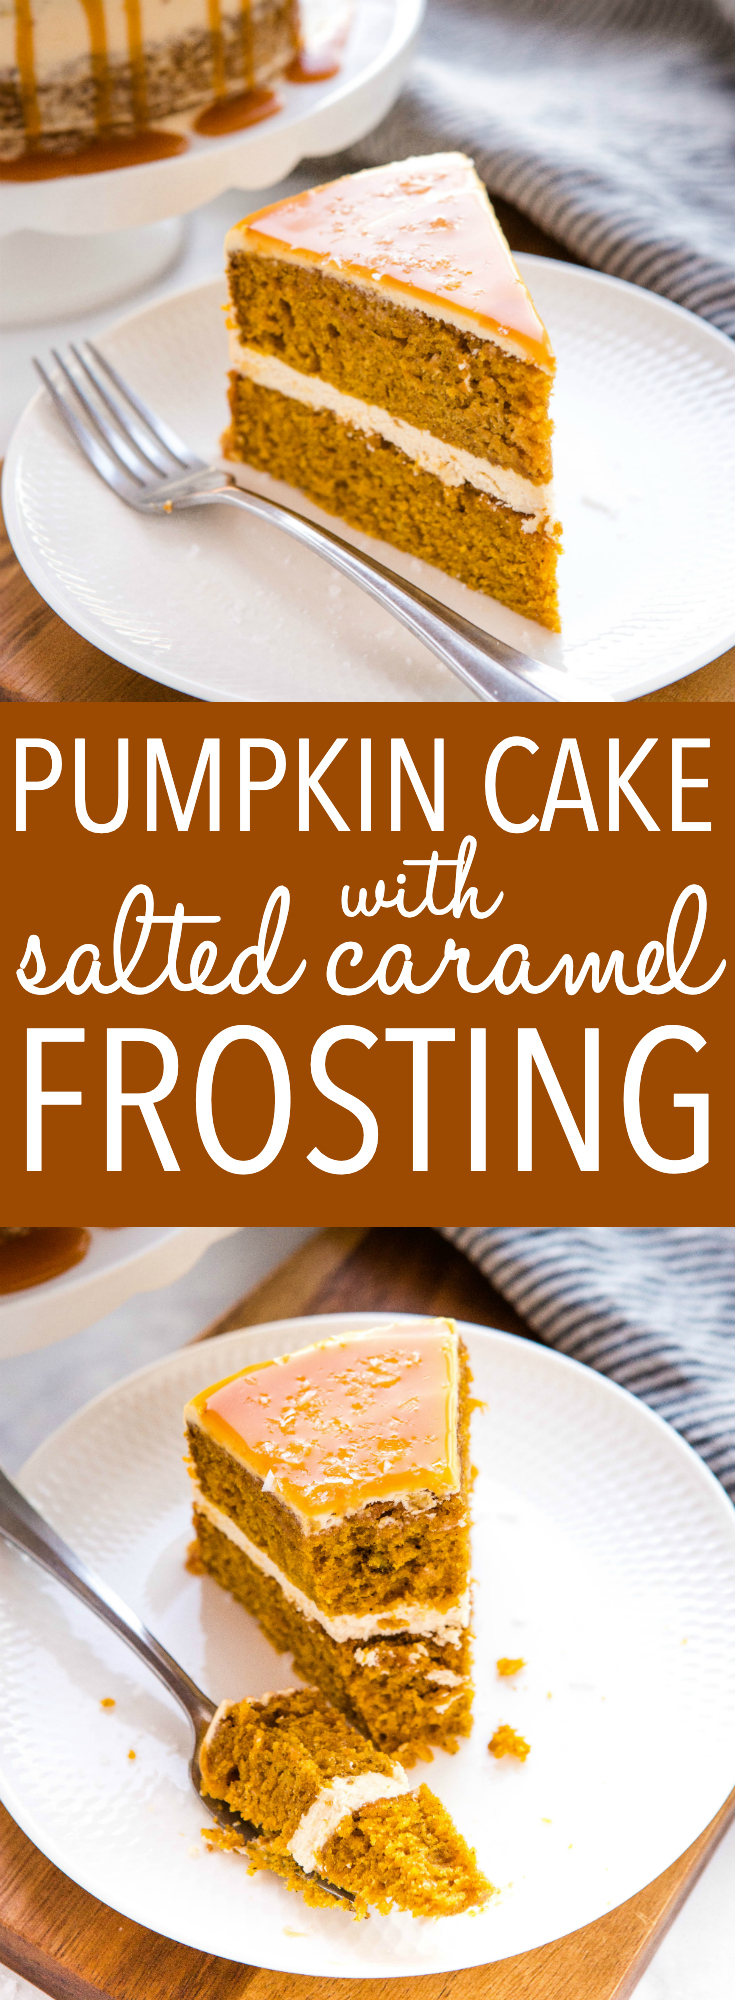 This Easy Pumpkin Cake with Salted Caramel Frosting is the perfect easy fall or winter dessert! An easy one-bowl pumpkin cake batter and a simple salted caramel buttercream frosting, this cake is moist and flavourful and topped with sweet caramel sauce and flaky sea salt. Recipe from thebusybaker.ca #cake #pumpkin #layercake #saltedcaramel #buttercream #frosting #homemade #celebration #dessert #thanksgiving via @busybakerblog